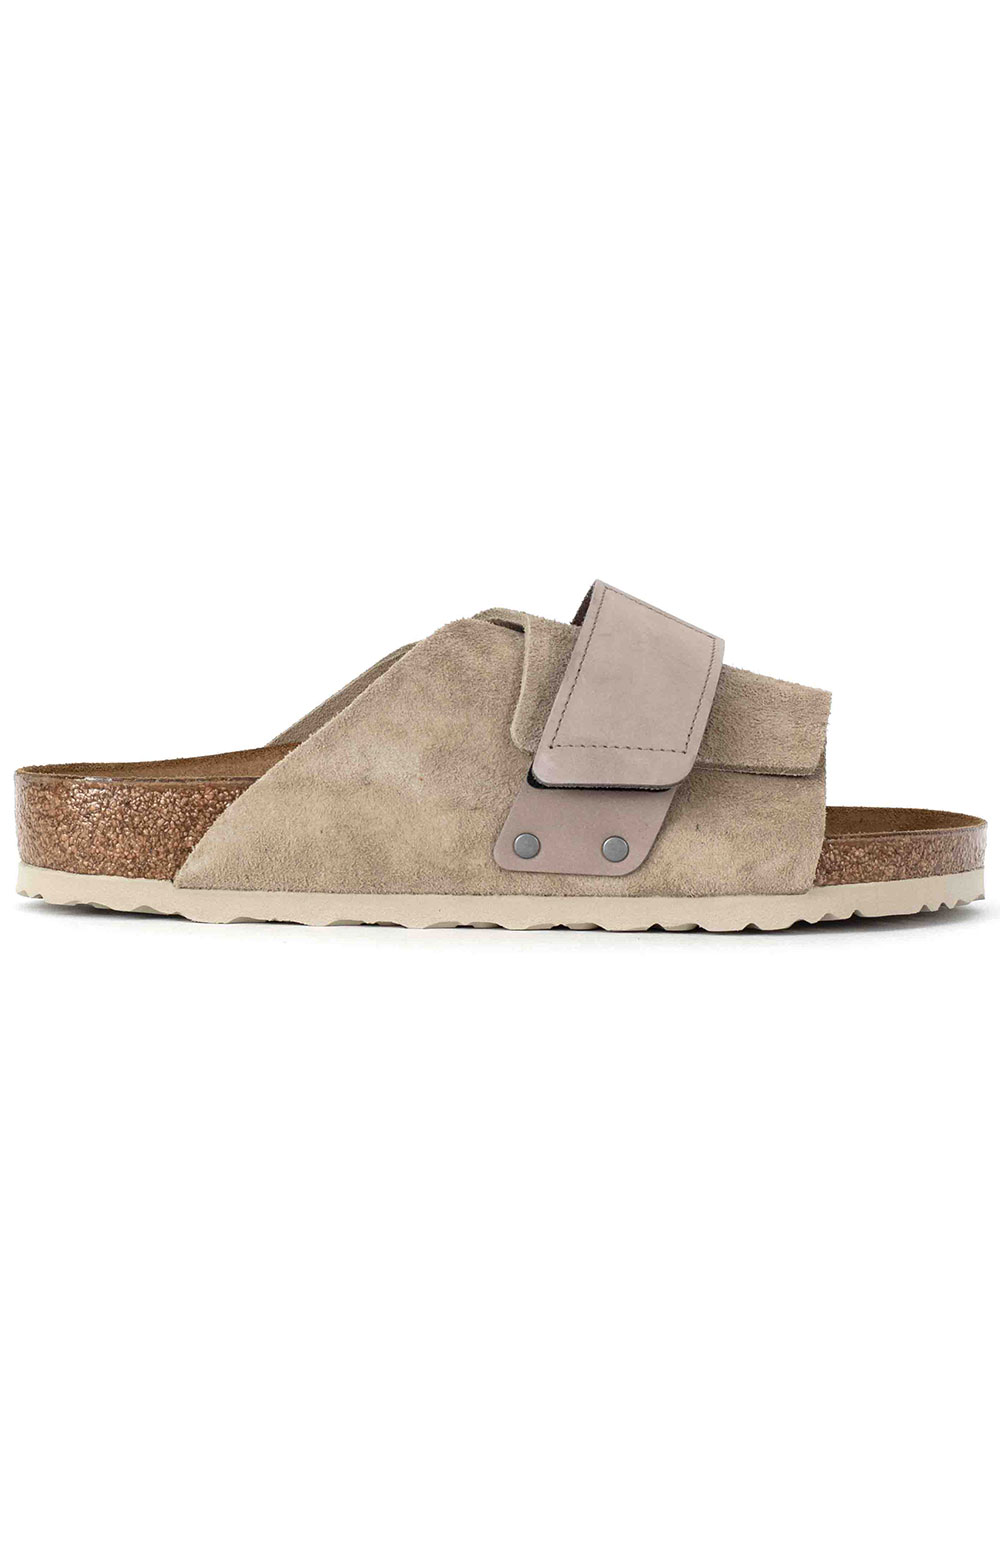 (1015572) Kyoto Sandals - Taupe  3